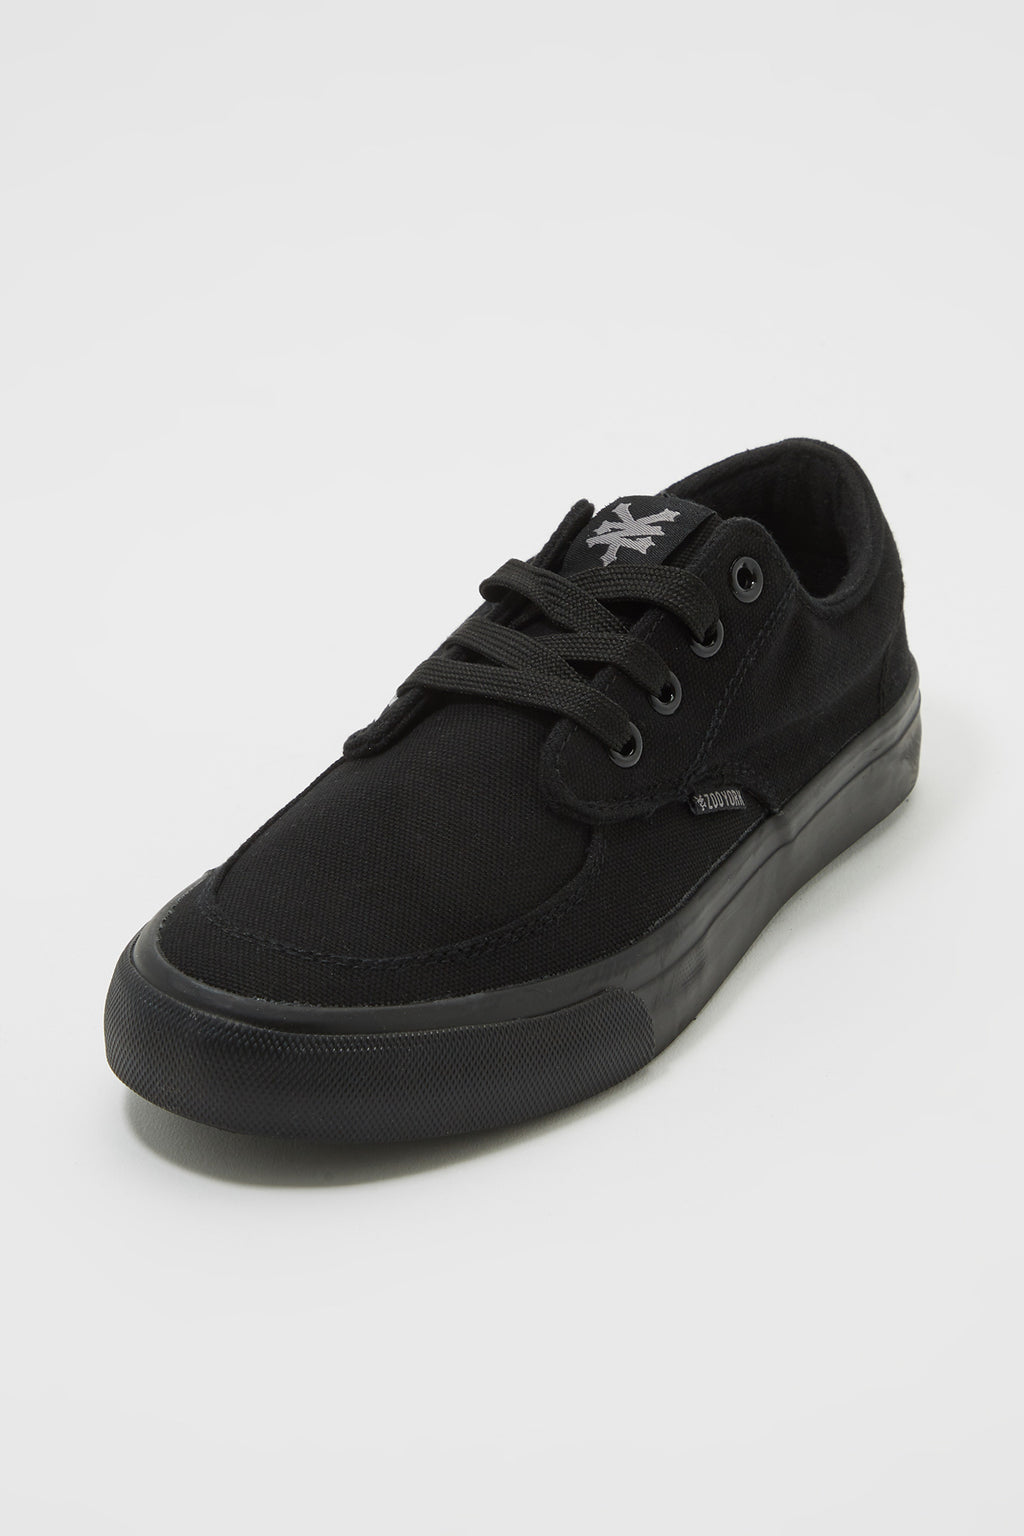 Zoo York Mens All Black Ryan Canvas Shoes